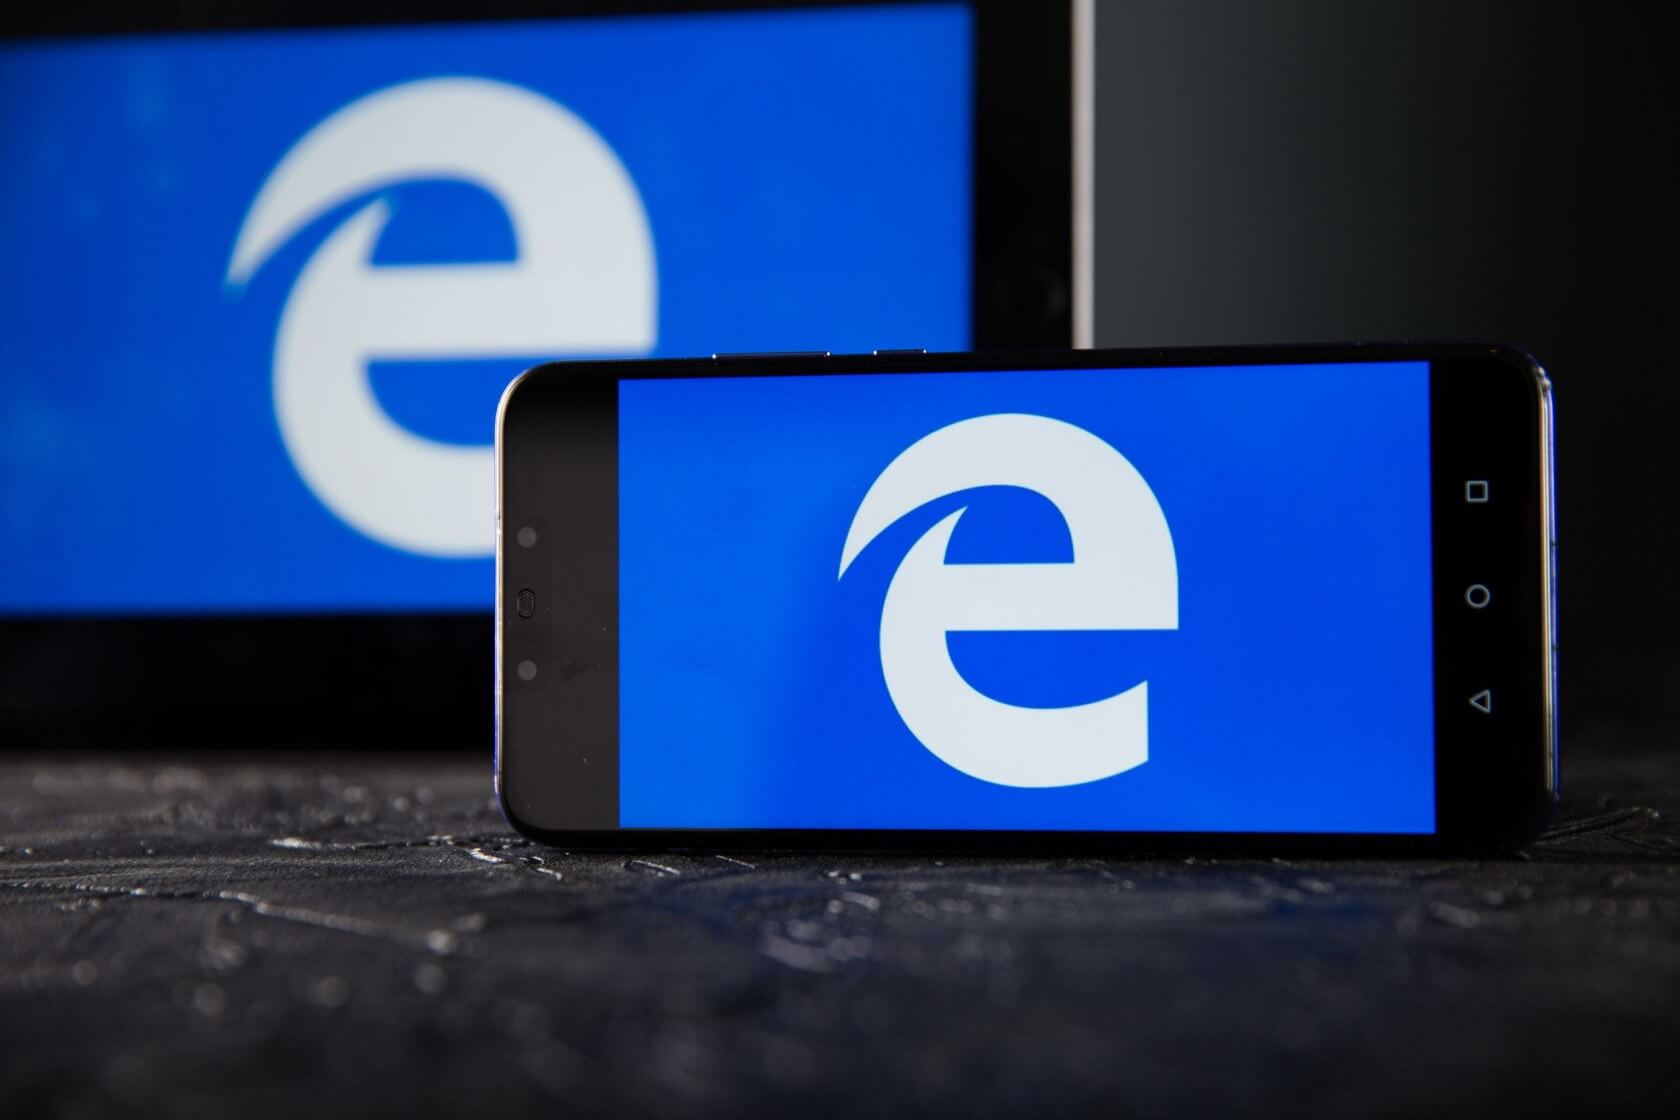 Microsoft 365 is dropping support for Internet Explorer 11 next year